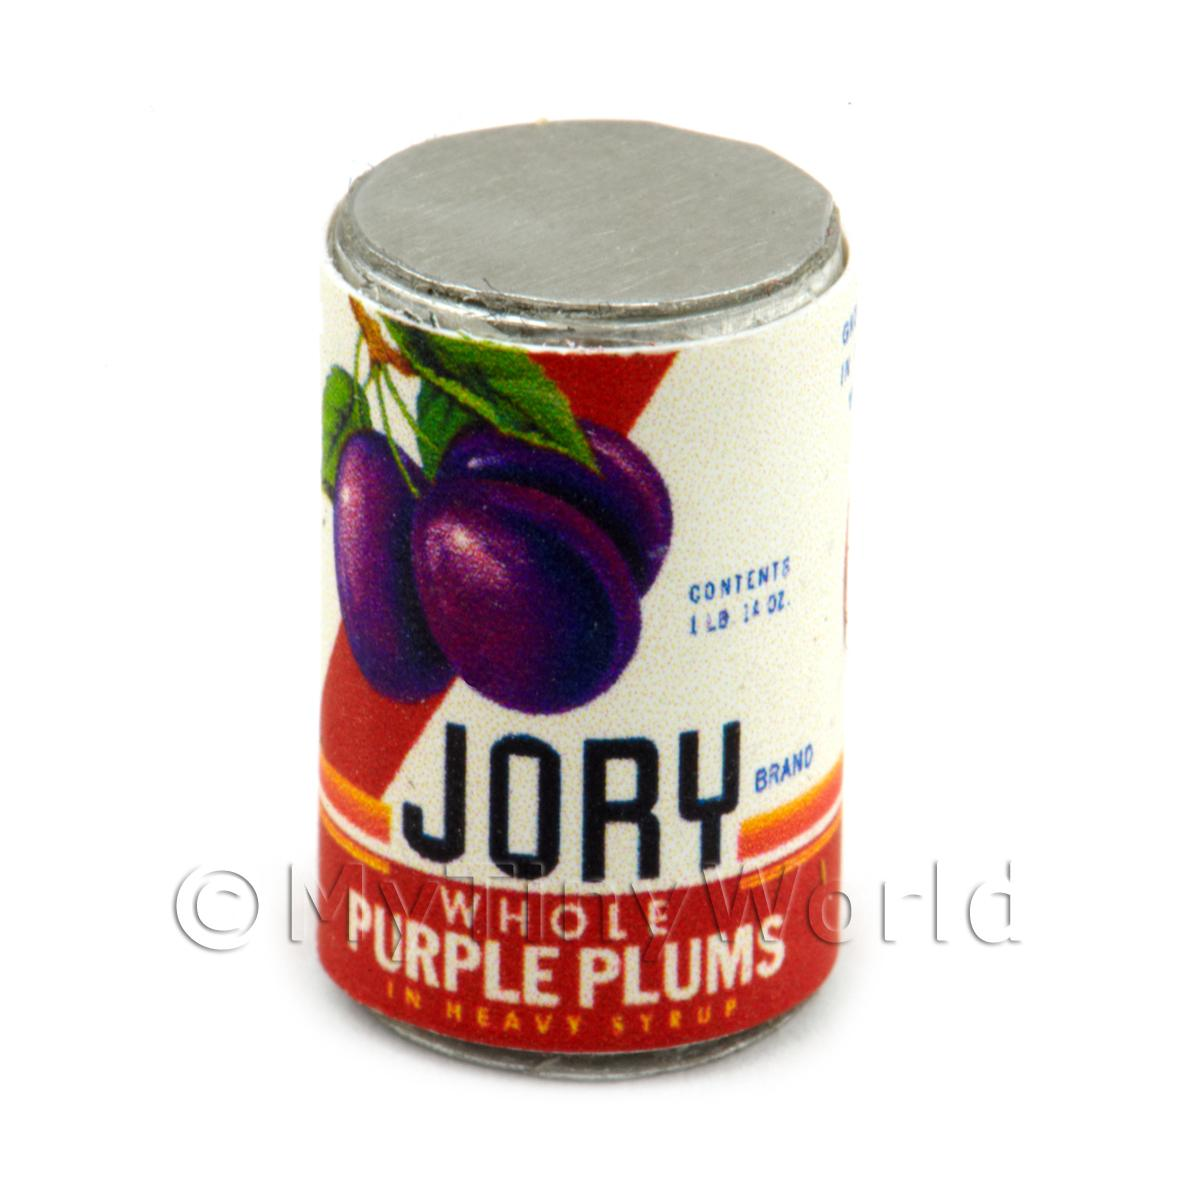 Dolls House Miniature Jory Brand Whole Plums Can (1930s)